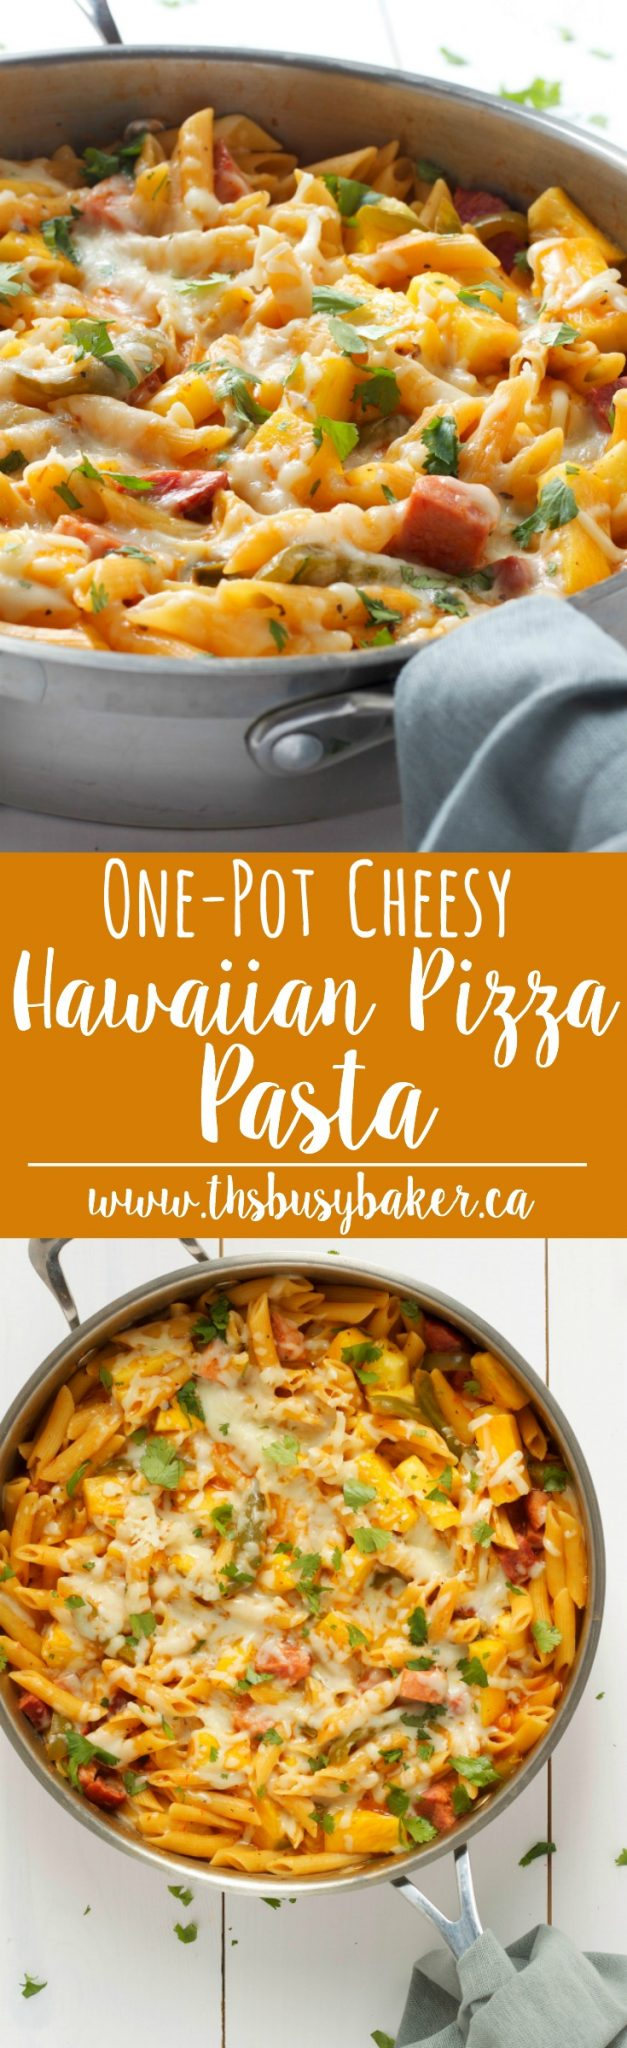 This Cheesy One Pot Hawaiian Pizza Pasta is the perfect easy weeknight meal with all the flavours of your favourite Hawaiian pizza! Recipe from thebusybaker.ca! via @busybakerblog